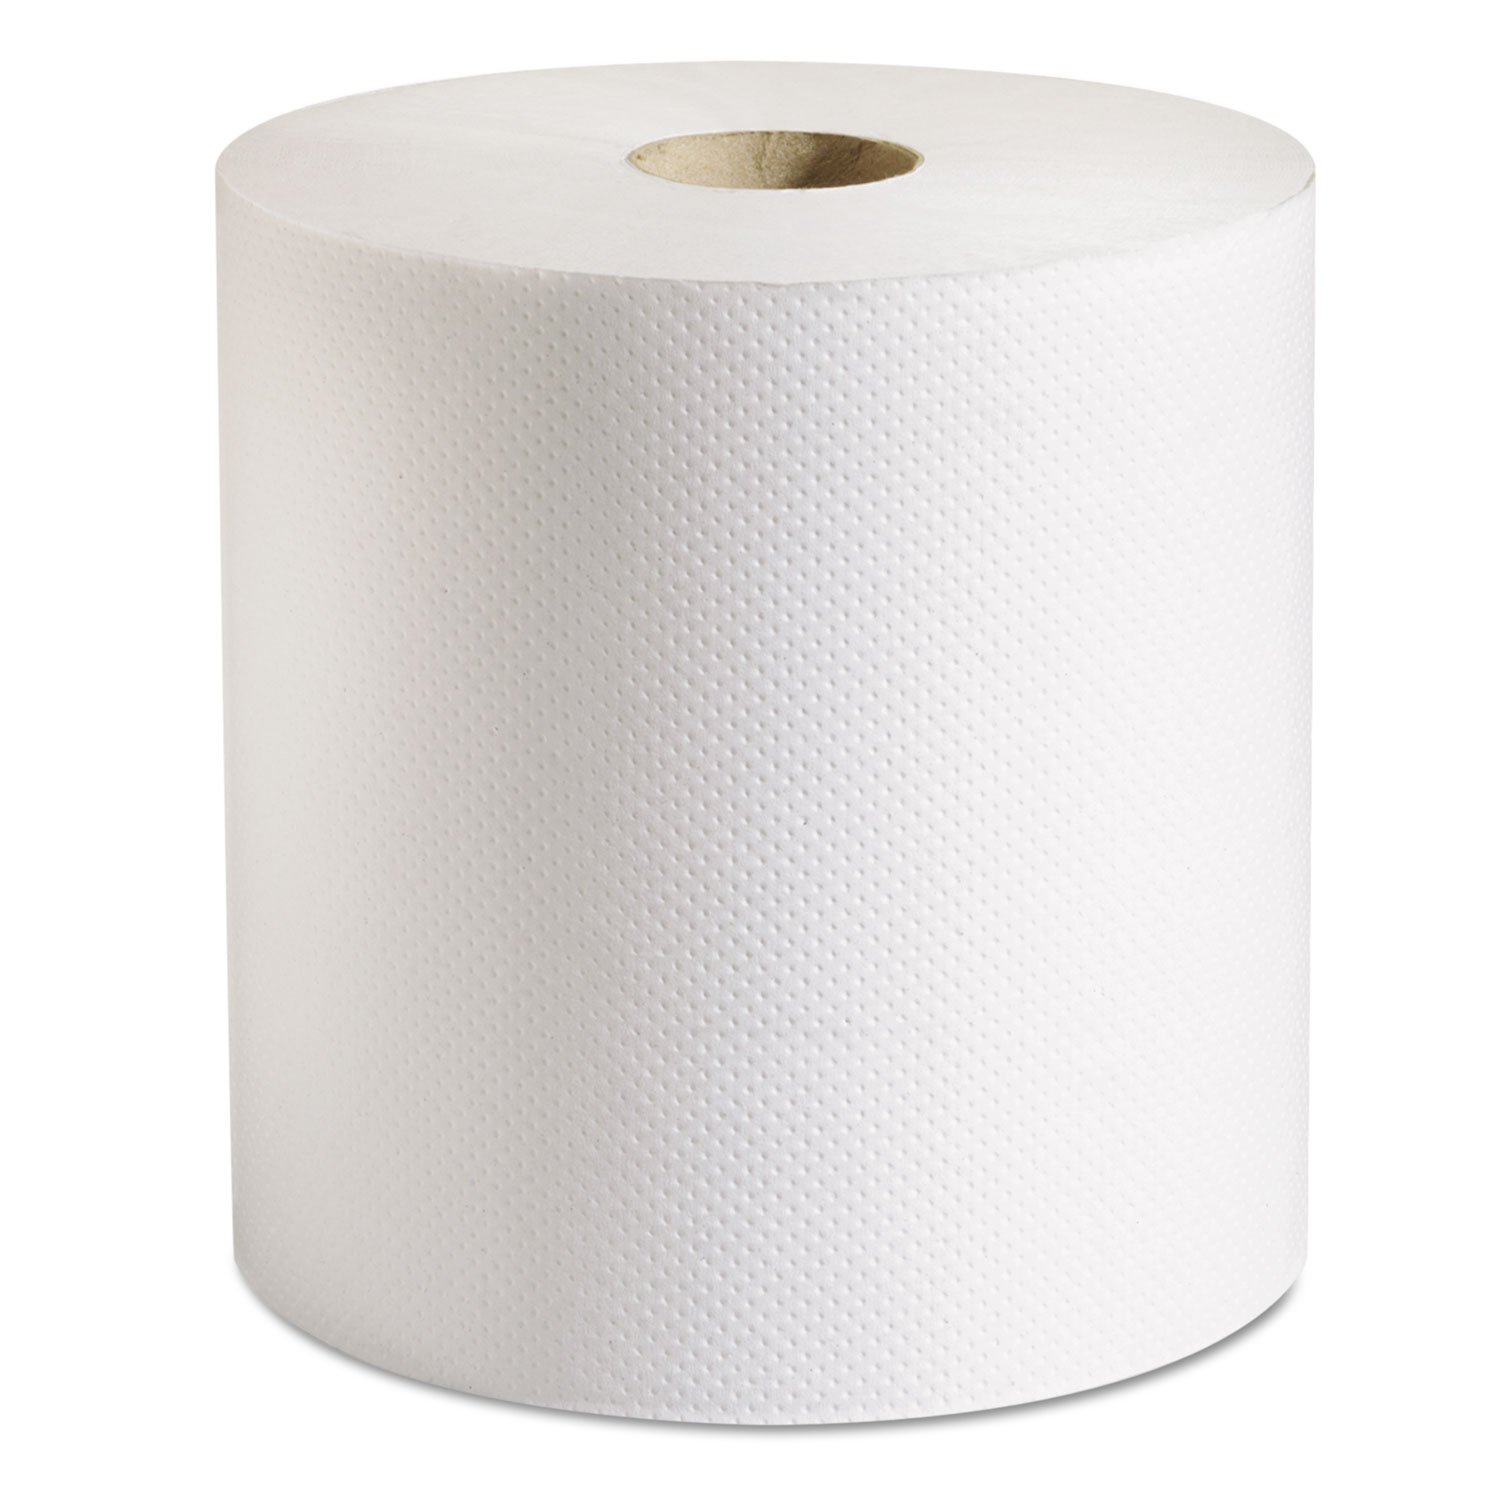 Marcal P708B Hardwound Roll Paper Towels, 7 7/8 x 800 ft, White, 6 Rolls/Carton